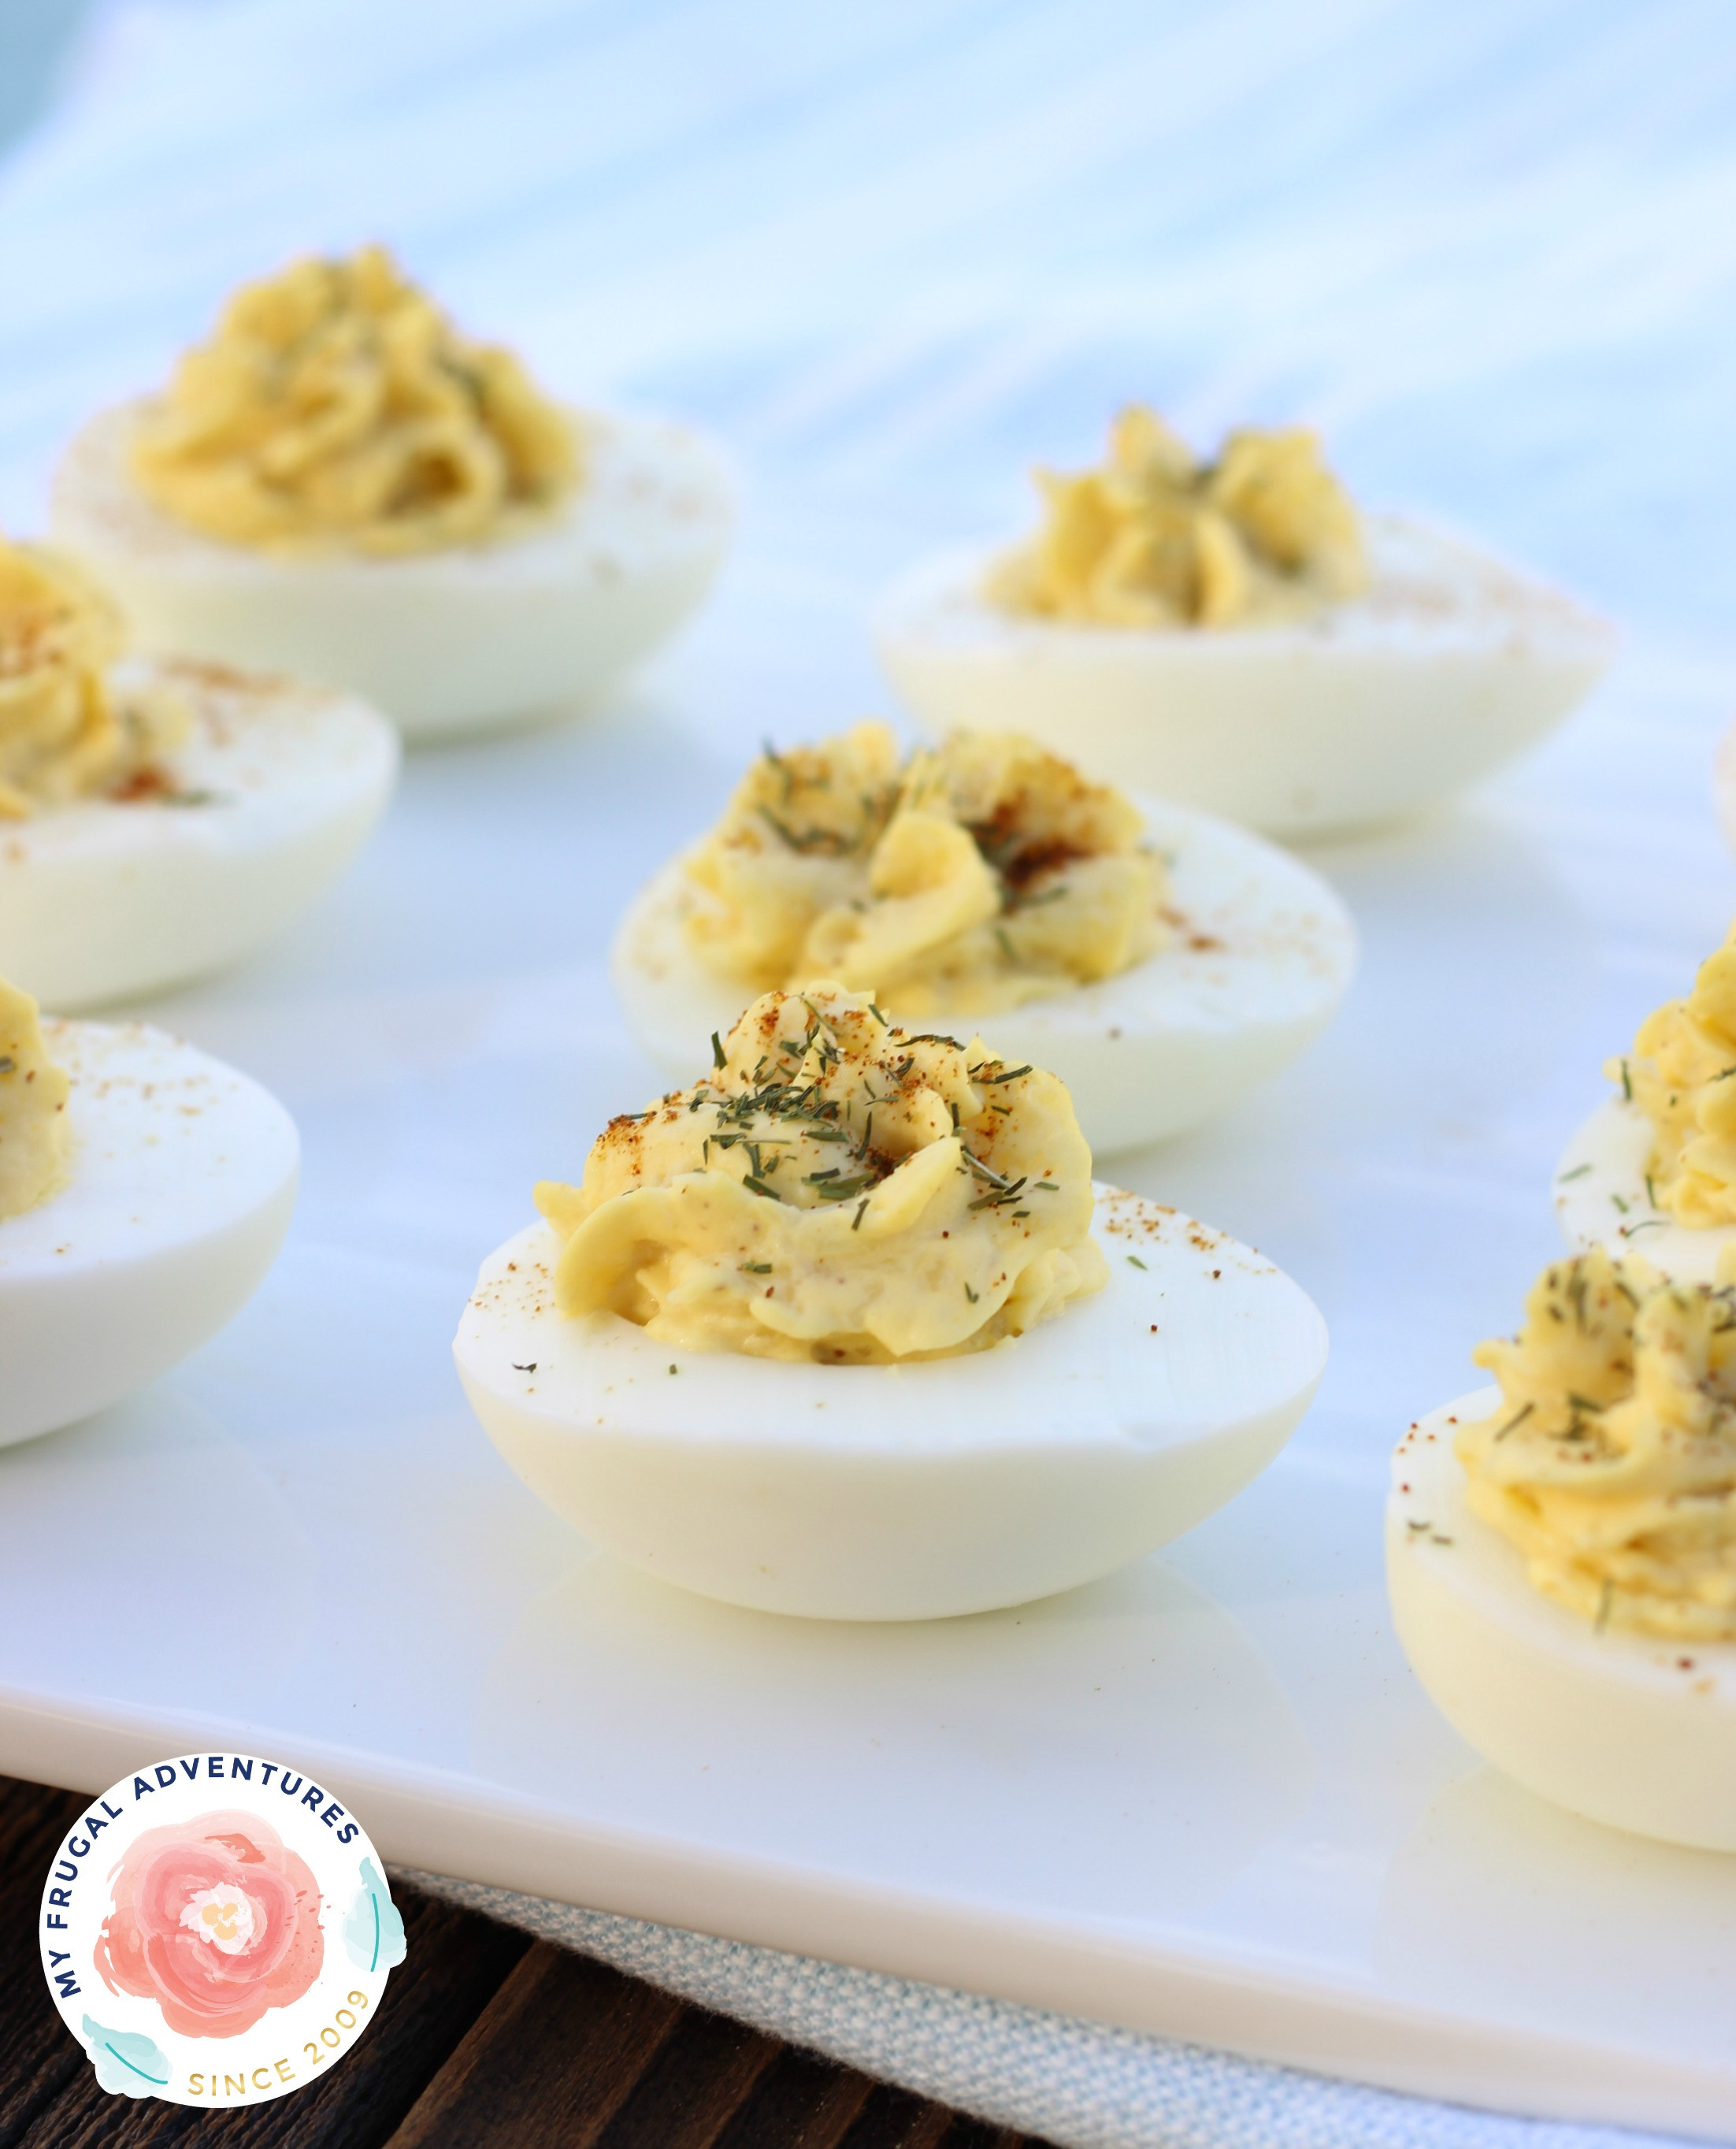 Low Fat Deviled Eggs  Low Fat Deviled Eggs Recipe My Frugal Adventures